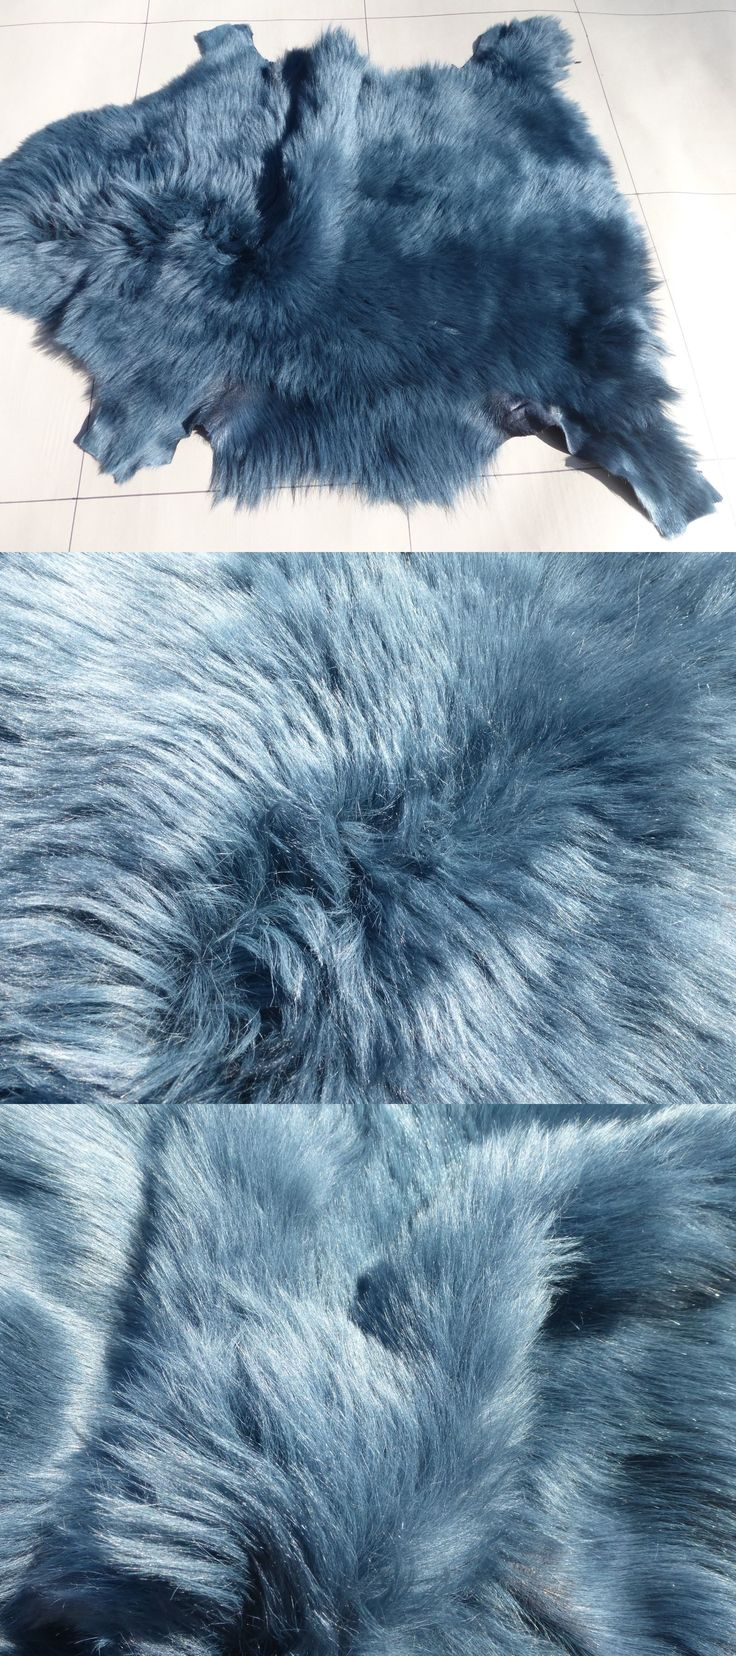 Leather Hides and Fur Pelts 83938: Sheepskin Shearling Leather Hide Dark Steel Blue Toscana Silky Haired -> BUY IT NOW ONLY: $35.99 on eBay!